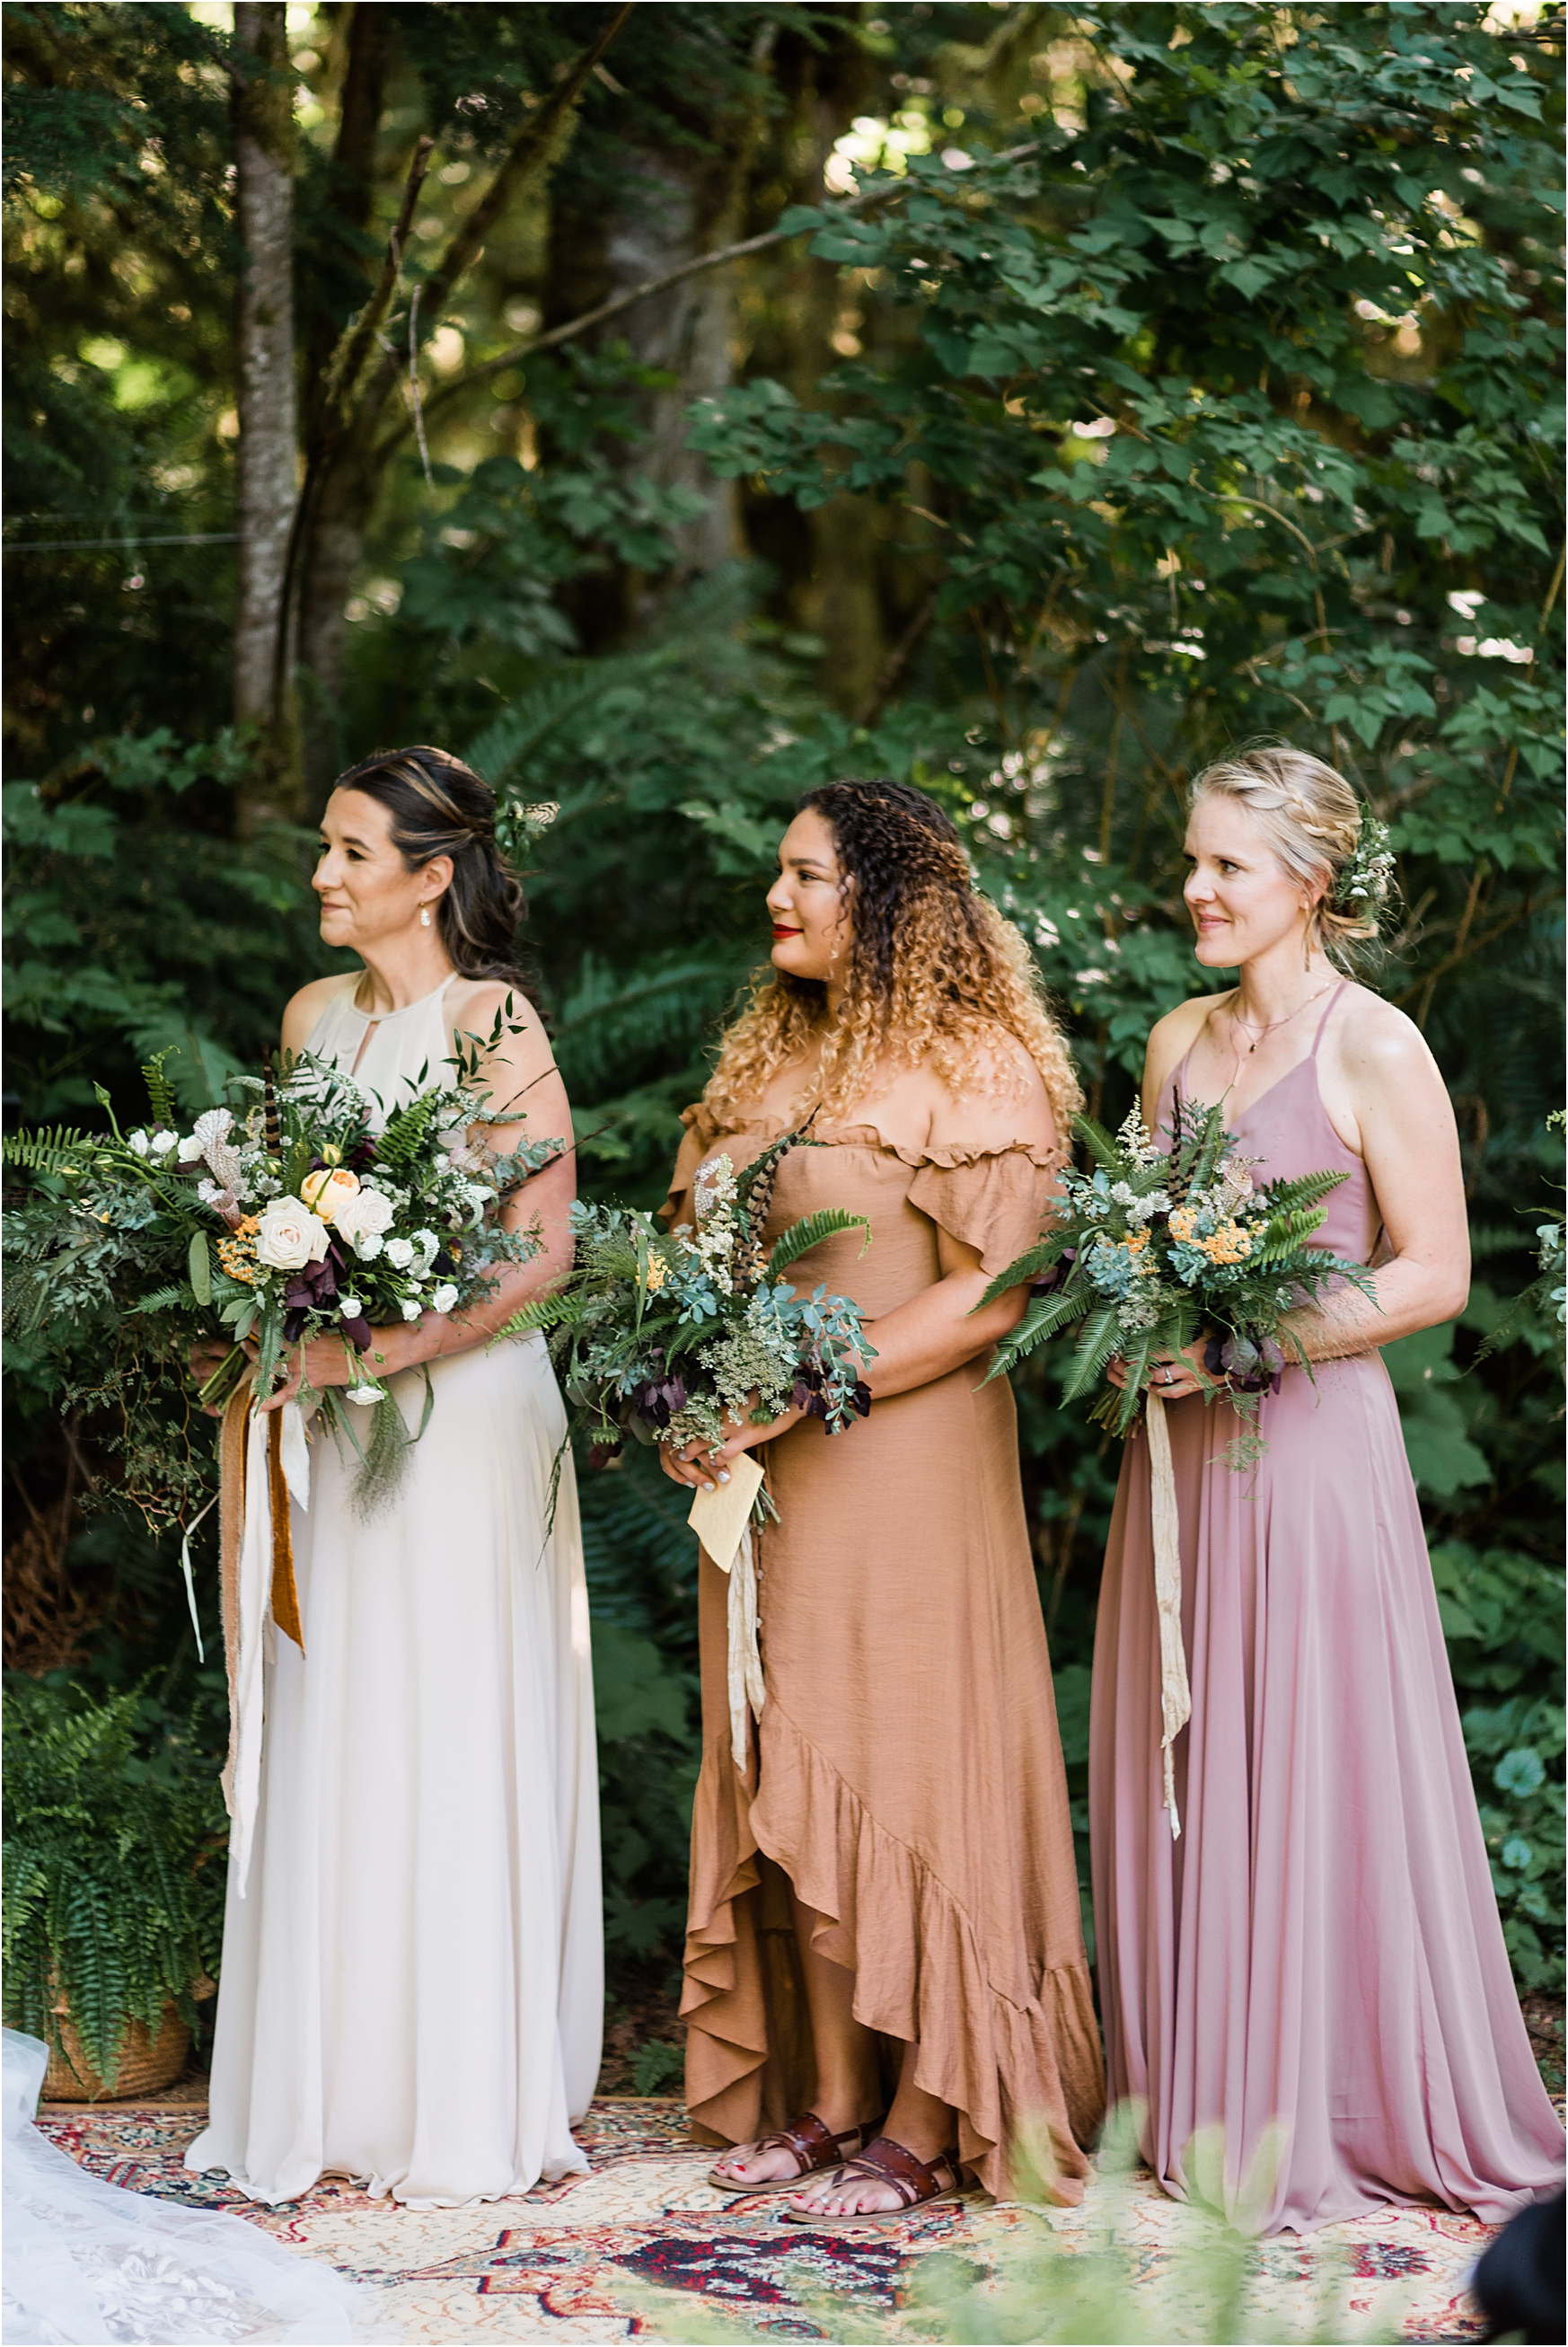 Bridesmaids during the ceremony at Cassy & Viva's bohemian Oregon destination wedding at Camp Lane. Image by Forthright Photo.